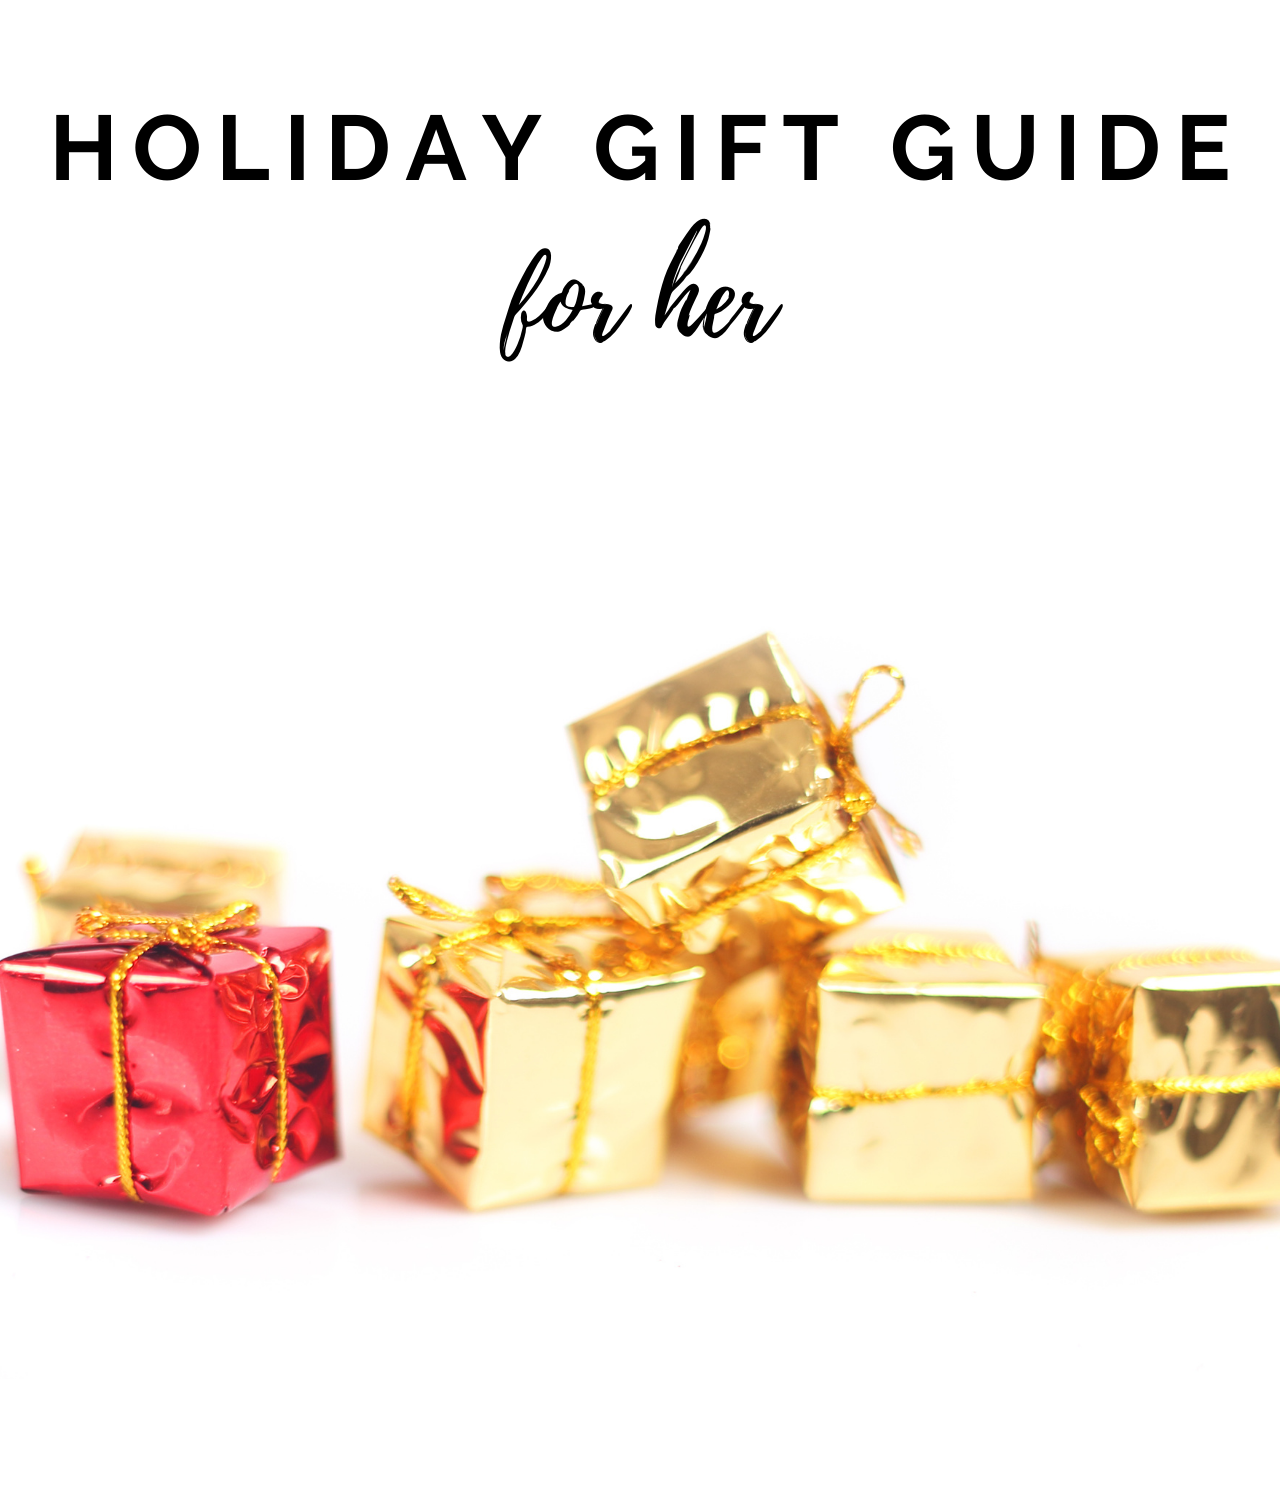 HOLIDAY GIFT GUIDE – SMALL BUSINESS EDITION